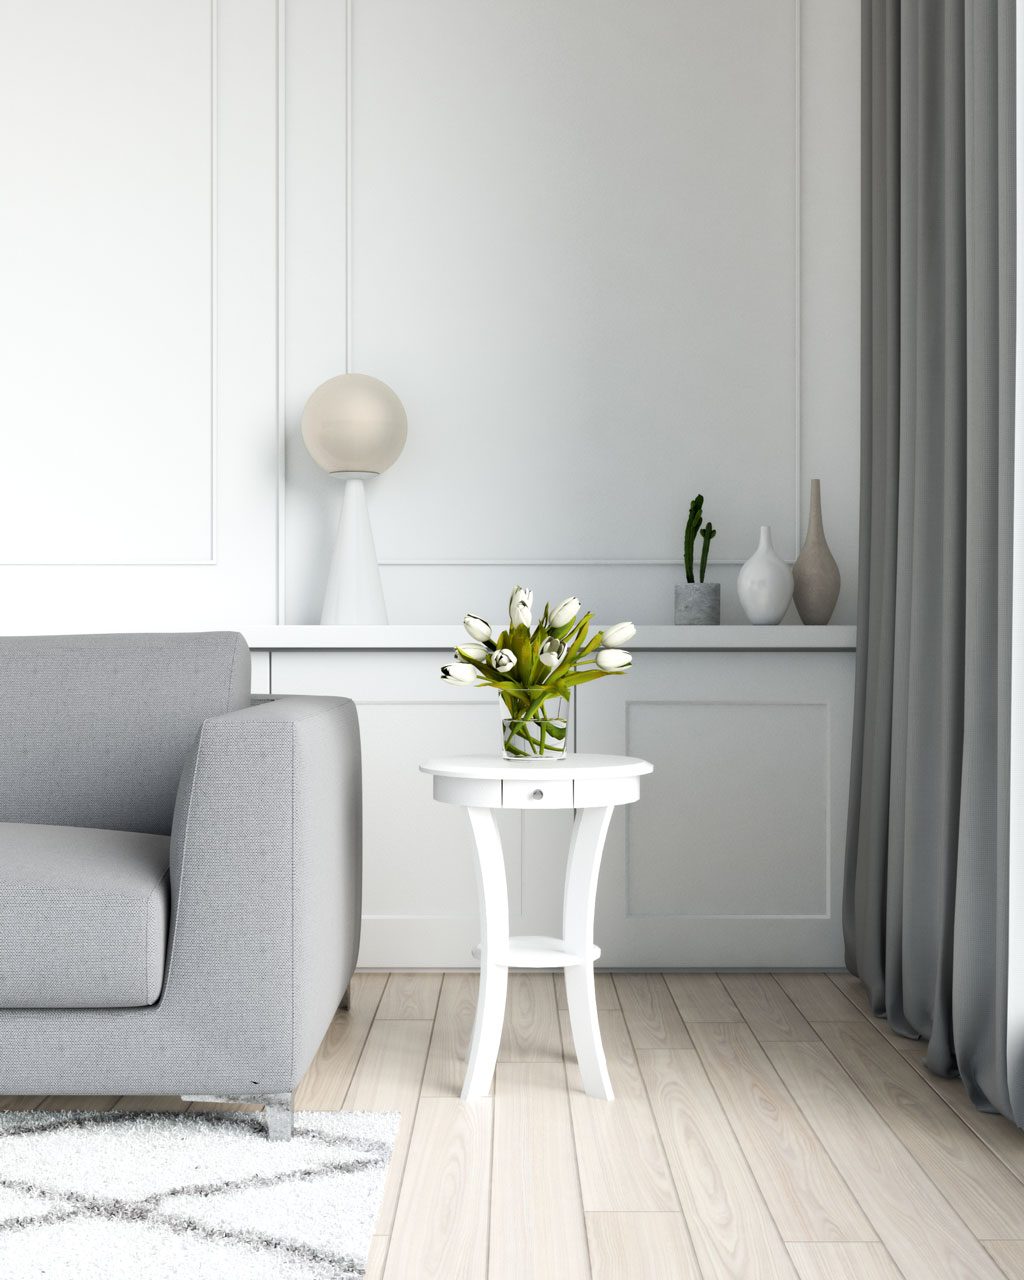 Classic white table with grey couch